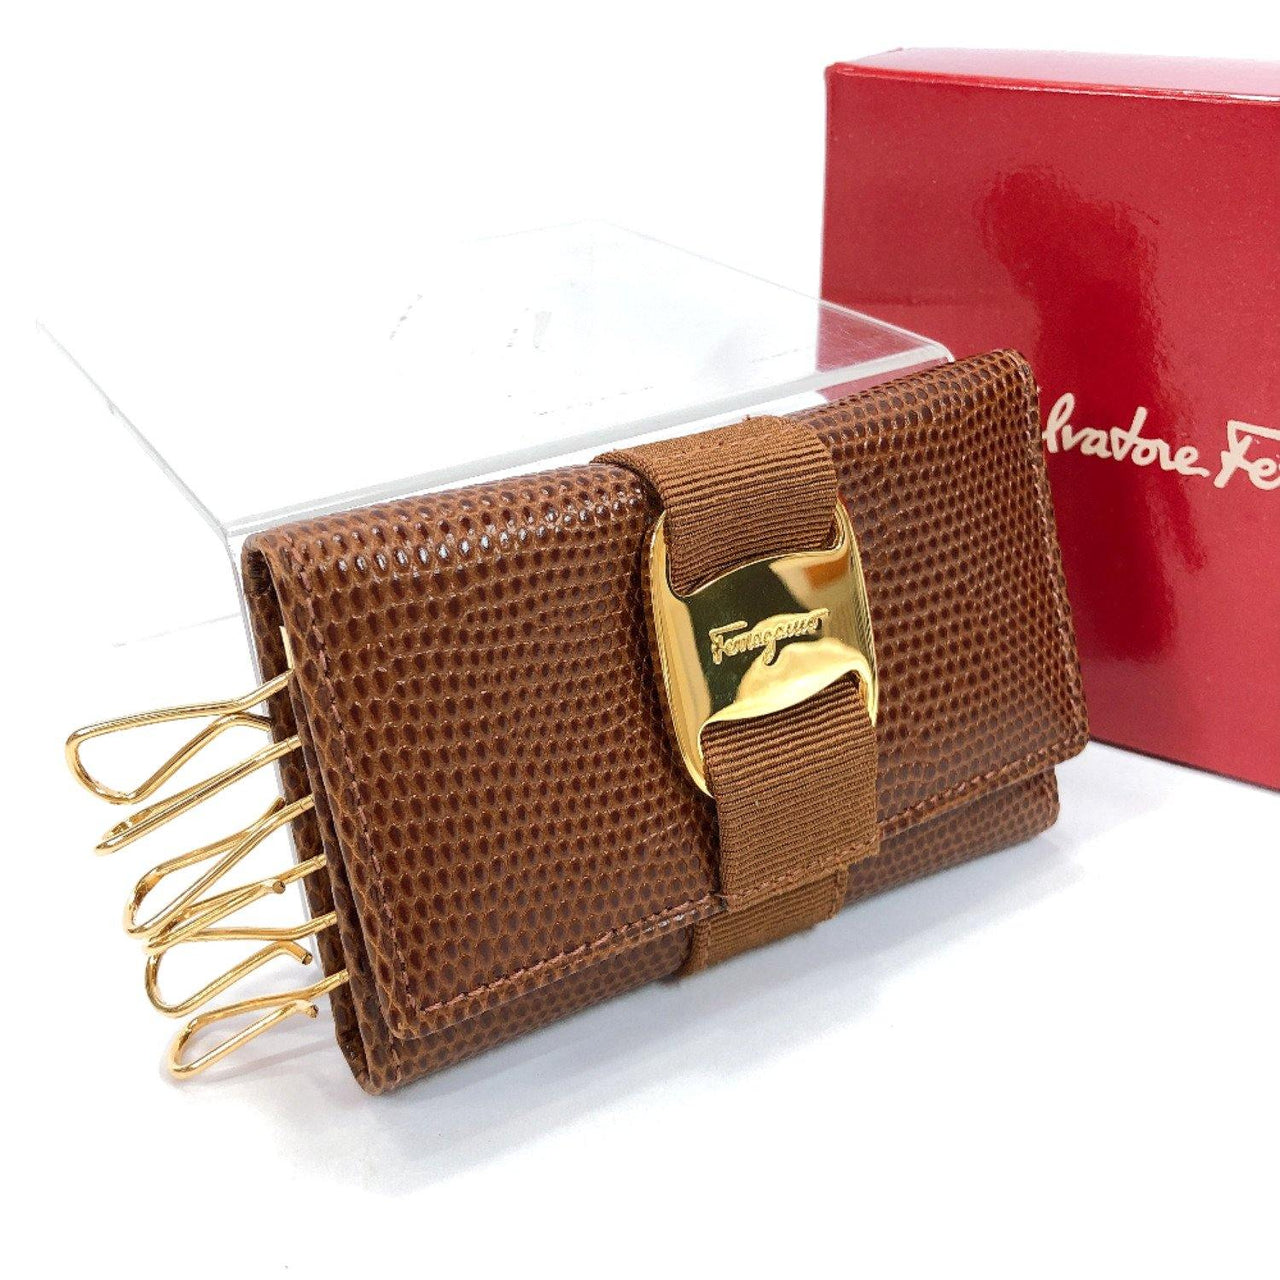 Salvatore Ferragamo key holder 22 3056 Vala six hooks leather/Gold Hardware Brown Women Used - JP-BRANDS.com